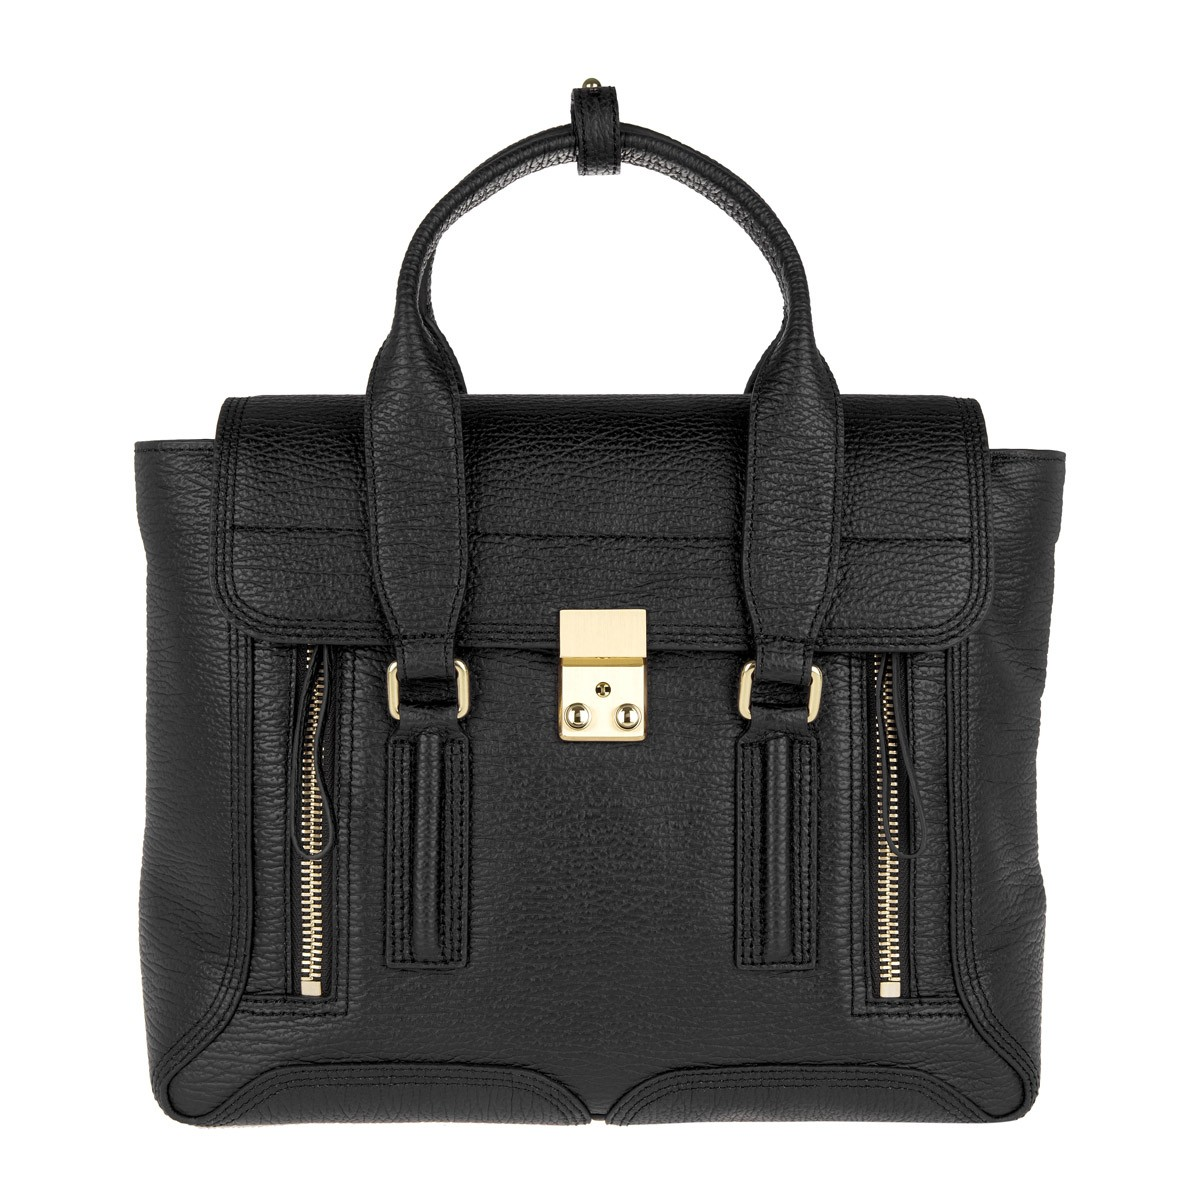 3.1 Phillip Lim Tote - Pashli Medium Satchel Black - in schwarz - für Damen